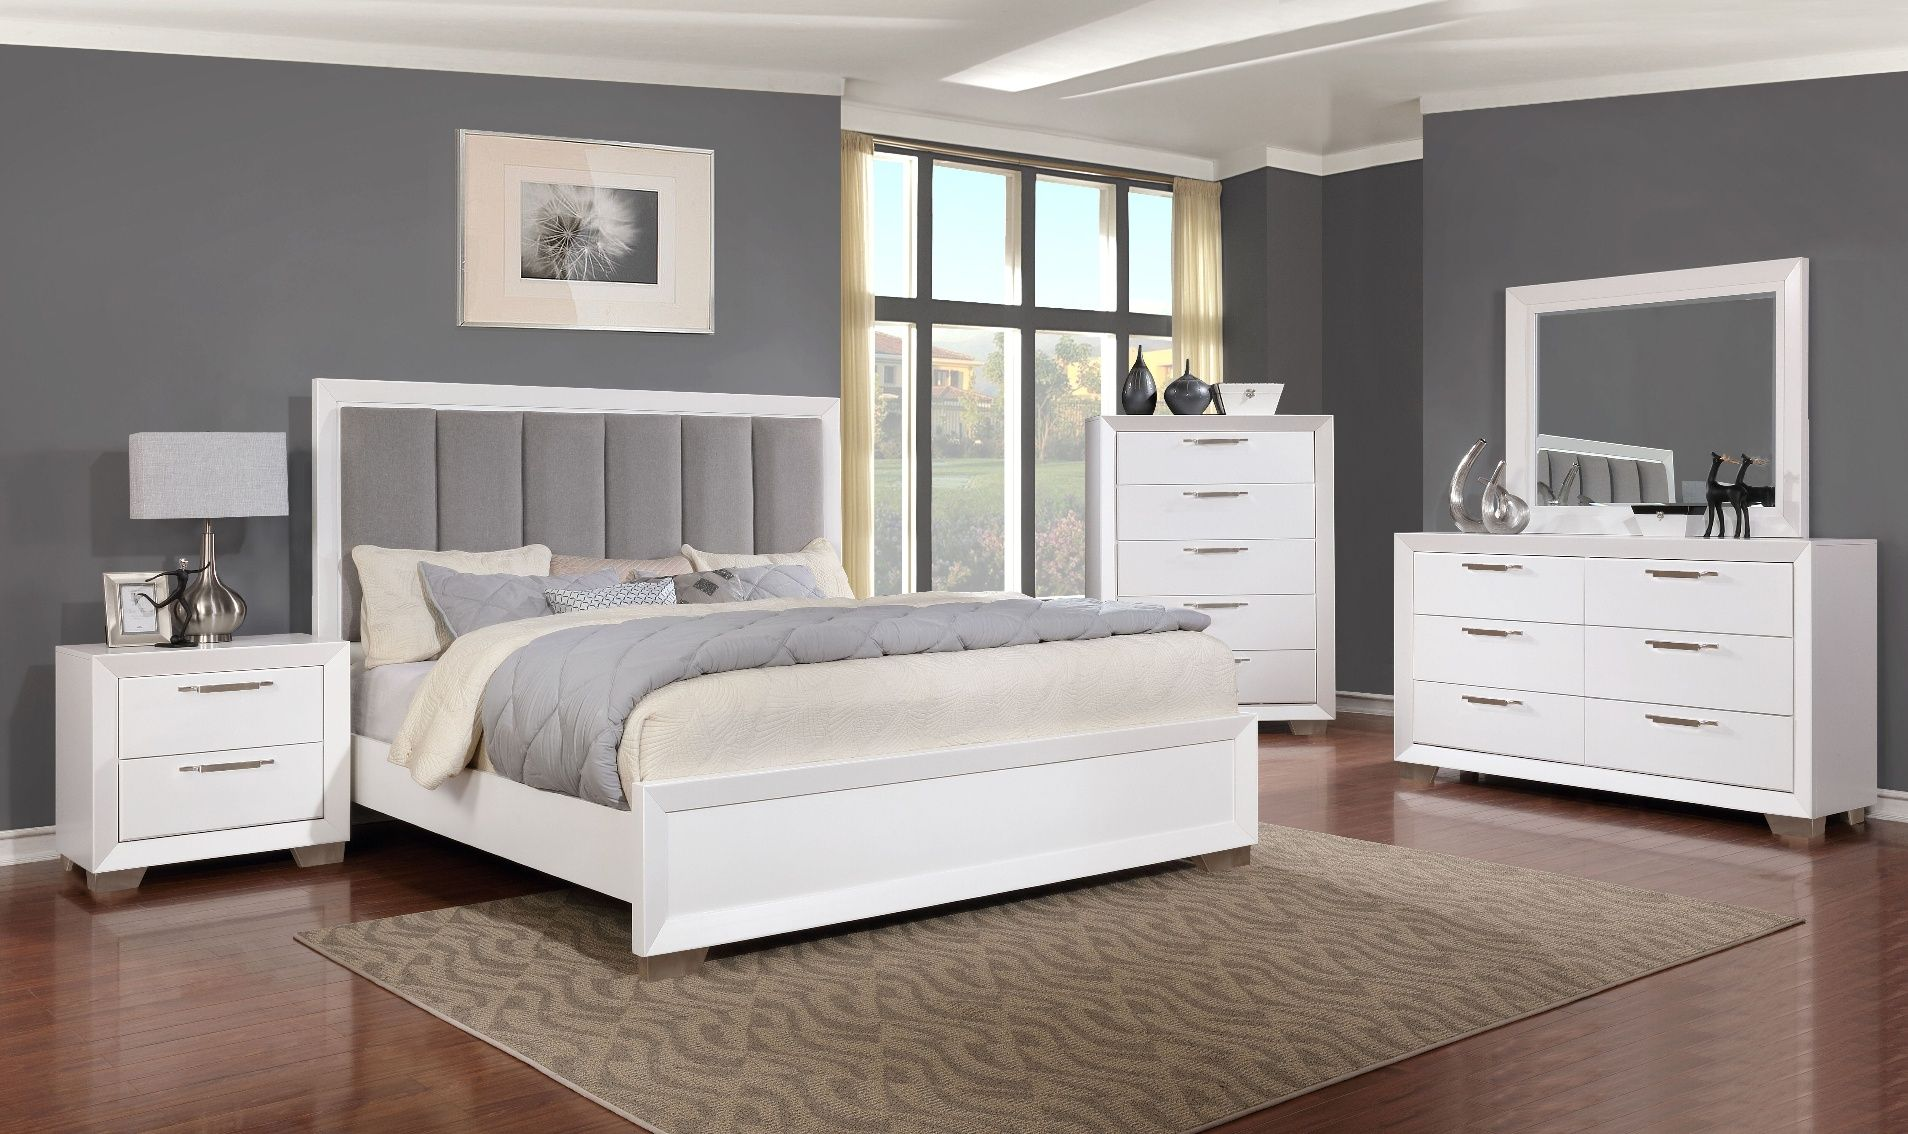 Liam 5 Piece Bedroom $1199 Dresser, Mirror, Chest, Bed and